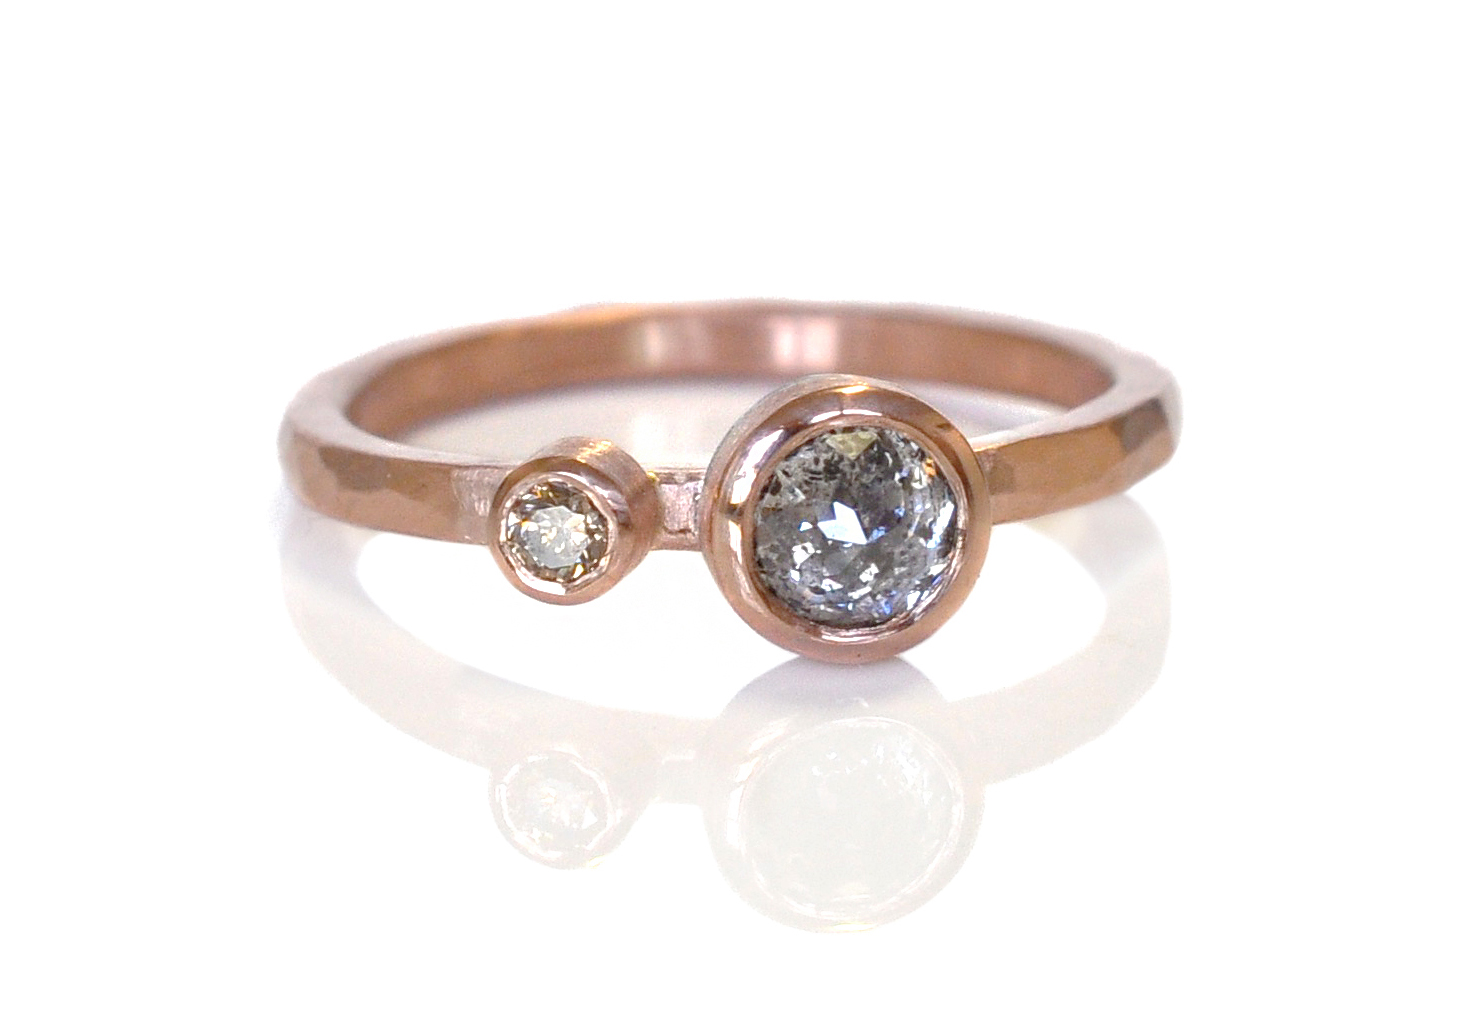 Ali and Jae both ended up with beautiful rings, but this one really just melts my heart <3   Double diamond ring in hammered 14k red gold with a rose cut salt and pepper diamond and a brilliant cut champagne diamond.